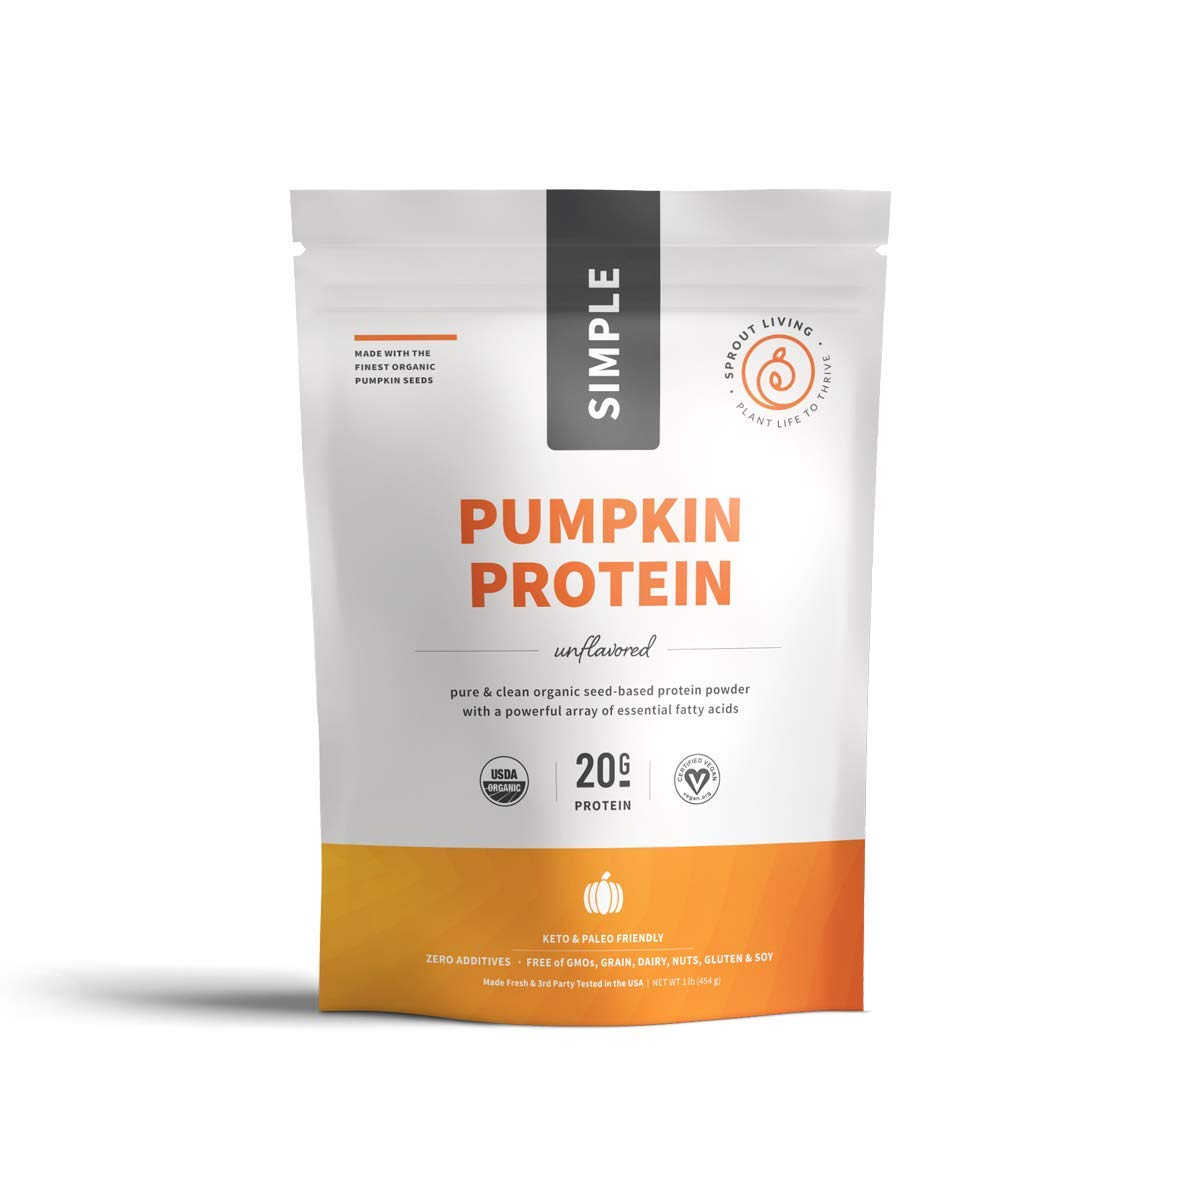 Sprout Living Simple Pumpkin Seed Protein Powder, 20 Grams Cold-Pressed Organic Plant Protein, Vegan, Gluten Free, No Dairy, No Additives (1 Pound, 16 Servings) by Sprout Living